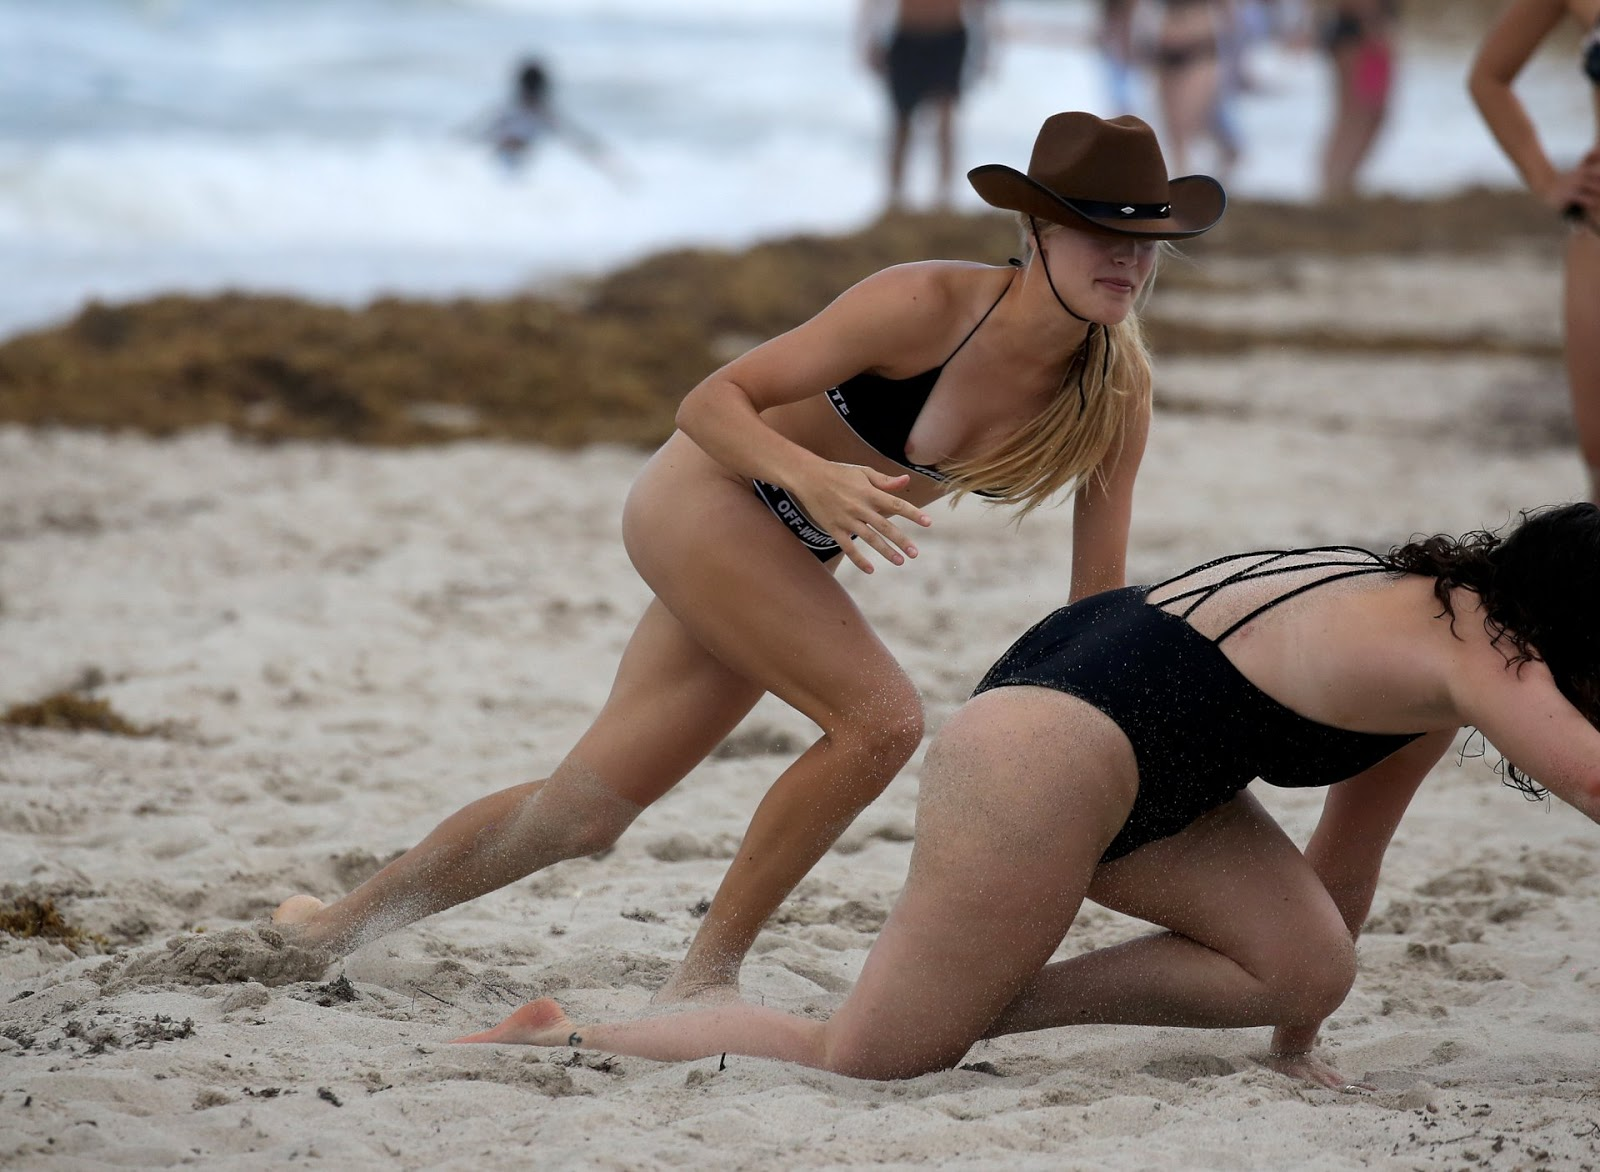 Eugenie Bouchard pops out of bikini while playing American football with friends